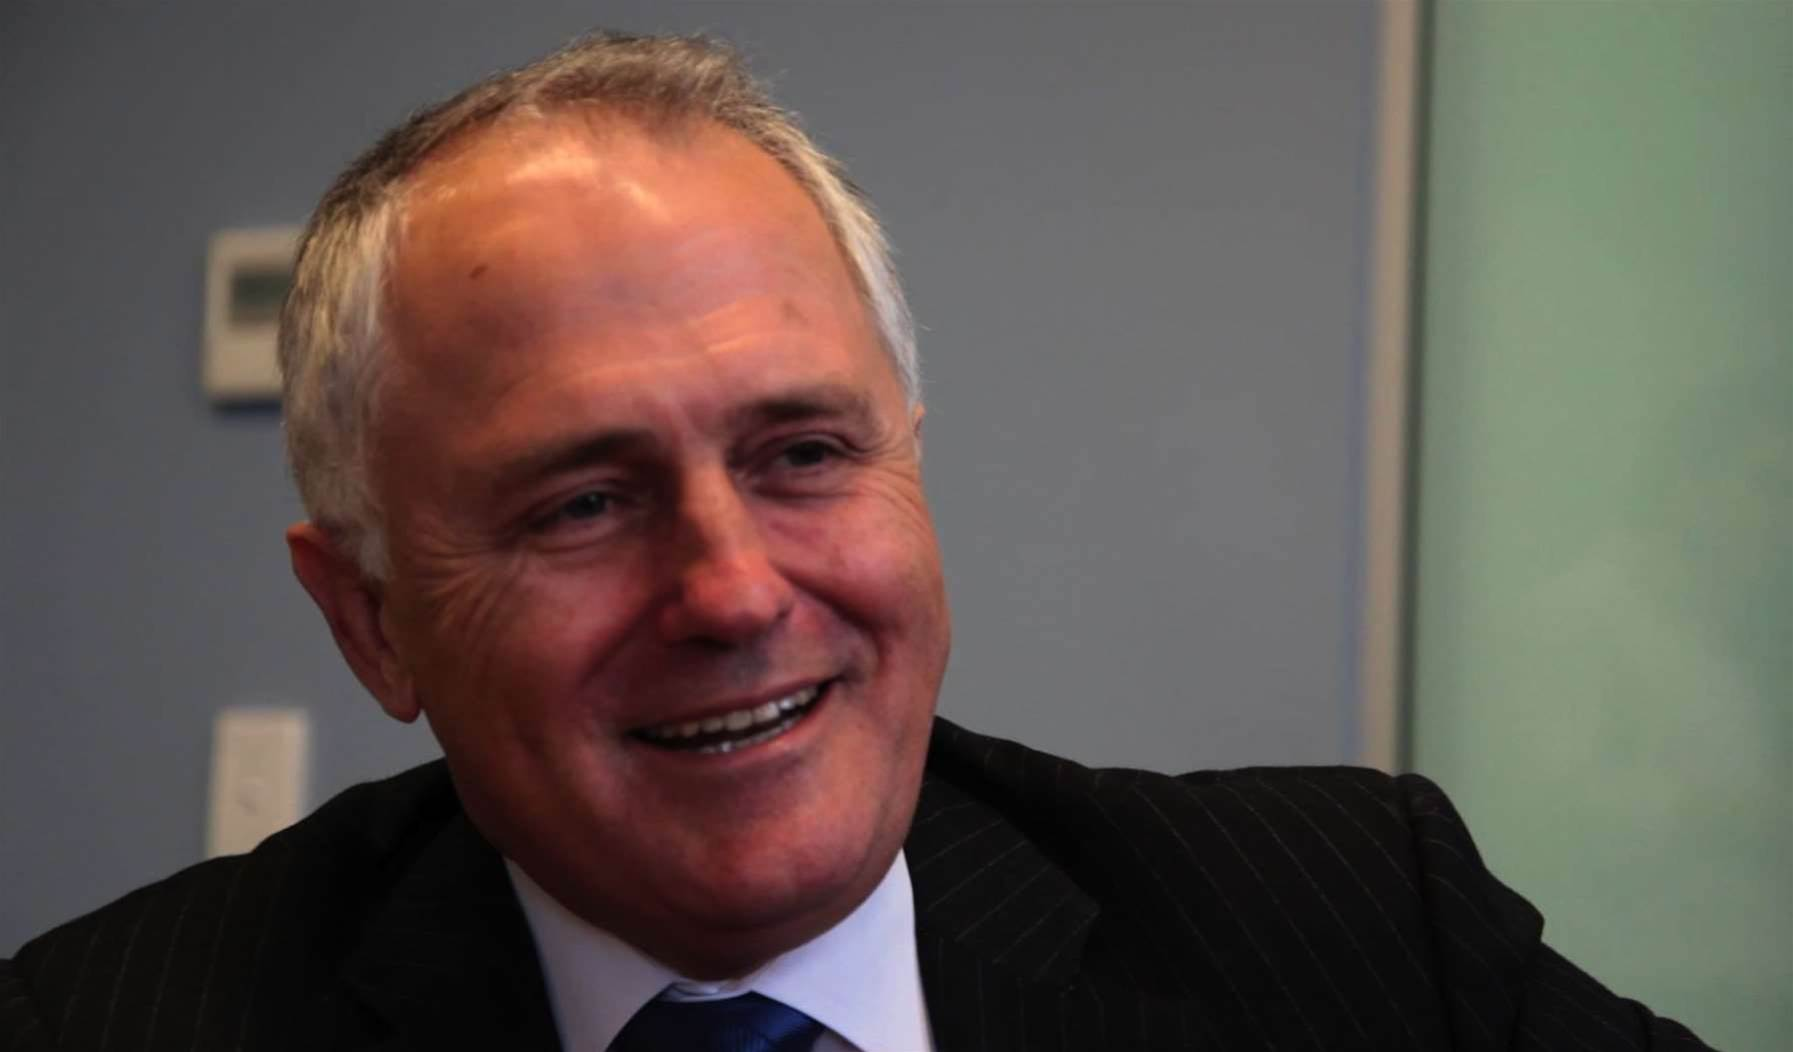 Global cyber espionage agreement needed: Turnbull